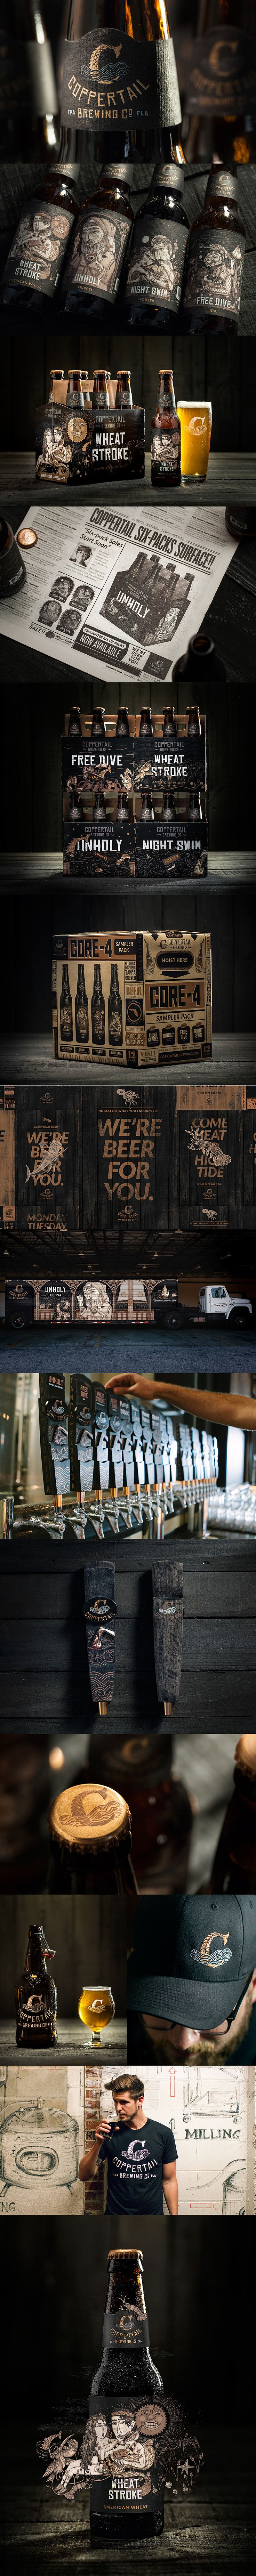 Coppertail Brewery started off as a name and we developed a story for the Tampa-based craft beer. Through a hand-drawn illustration, a mythical journey is experienced fro the bottles to the website and brewery. Read more on the story through branding.beer.